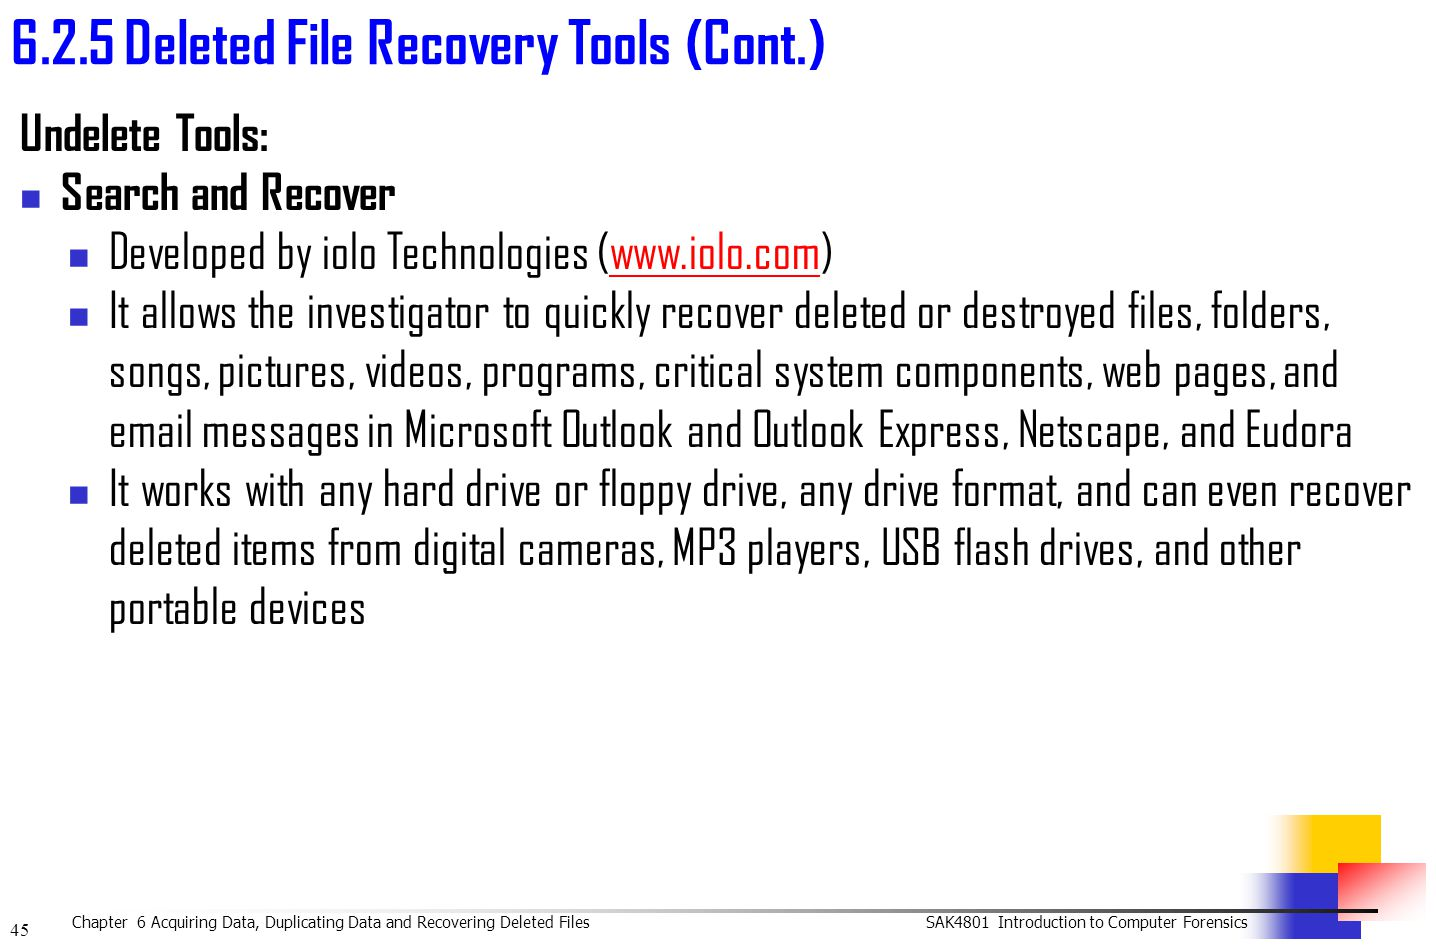 Iolo search and recover 2 3 user pack